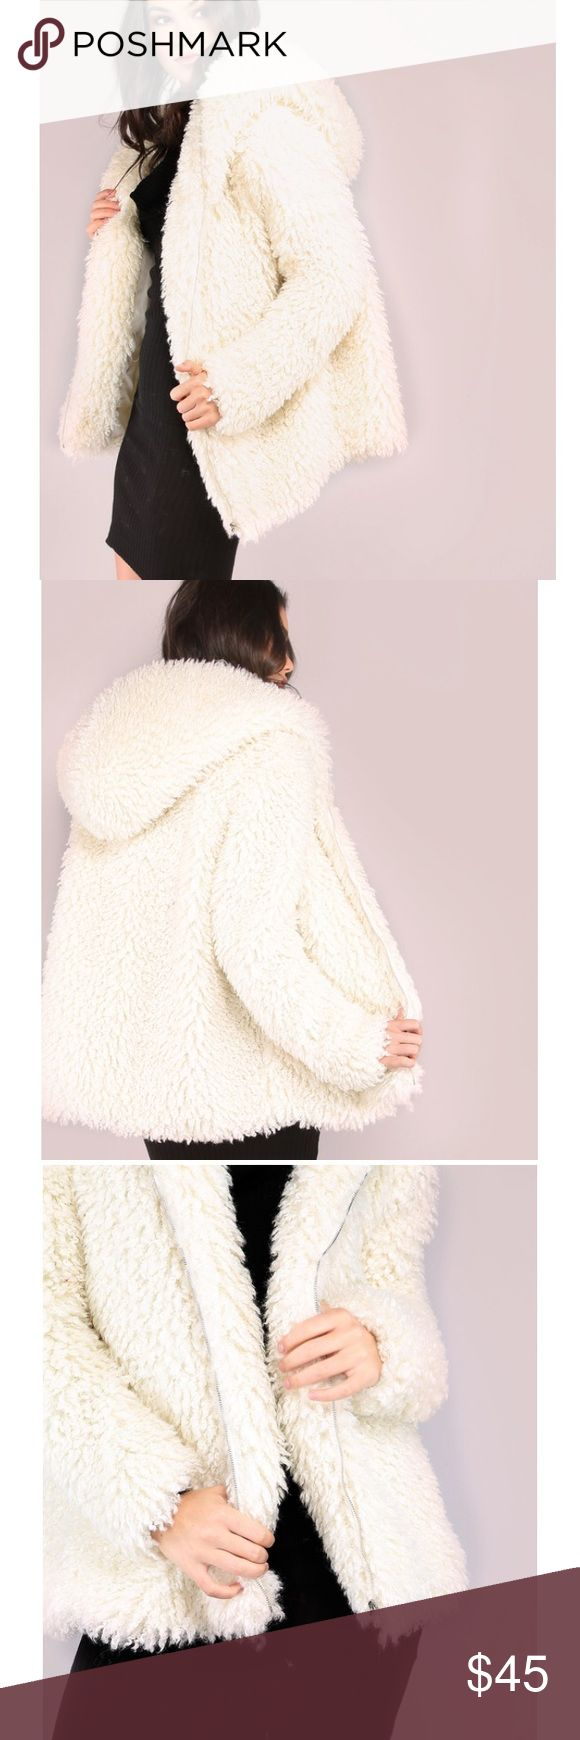 Faux fur hoodie Fluffy faux fur zip front hoodie. Brand new, never worn! Jackets & Coats